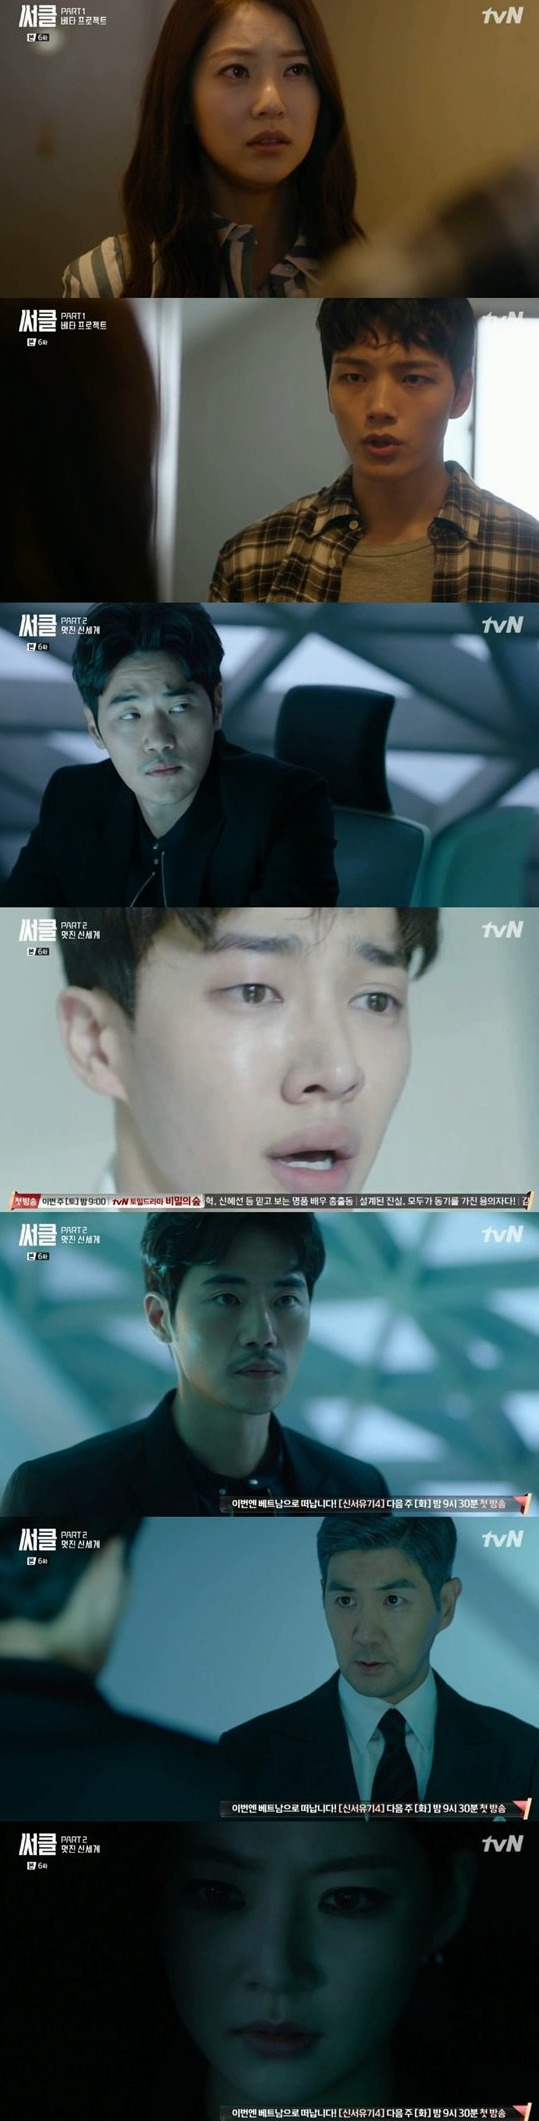 [Spoiler] Added episode 6 captures for the Korean drama 'Circle'